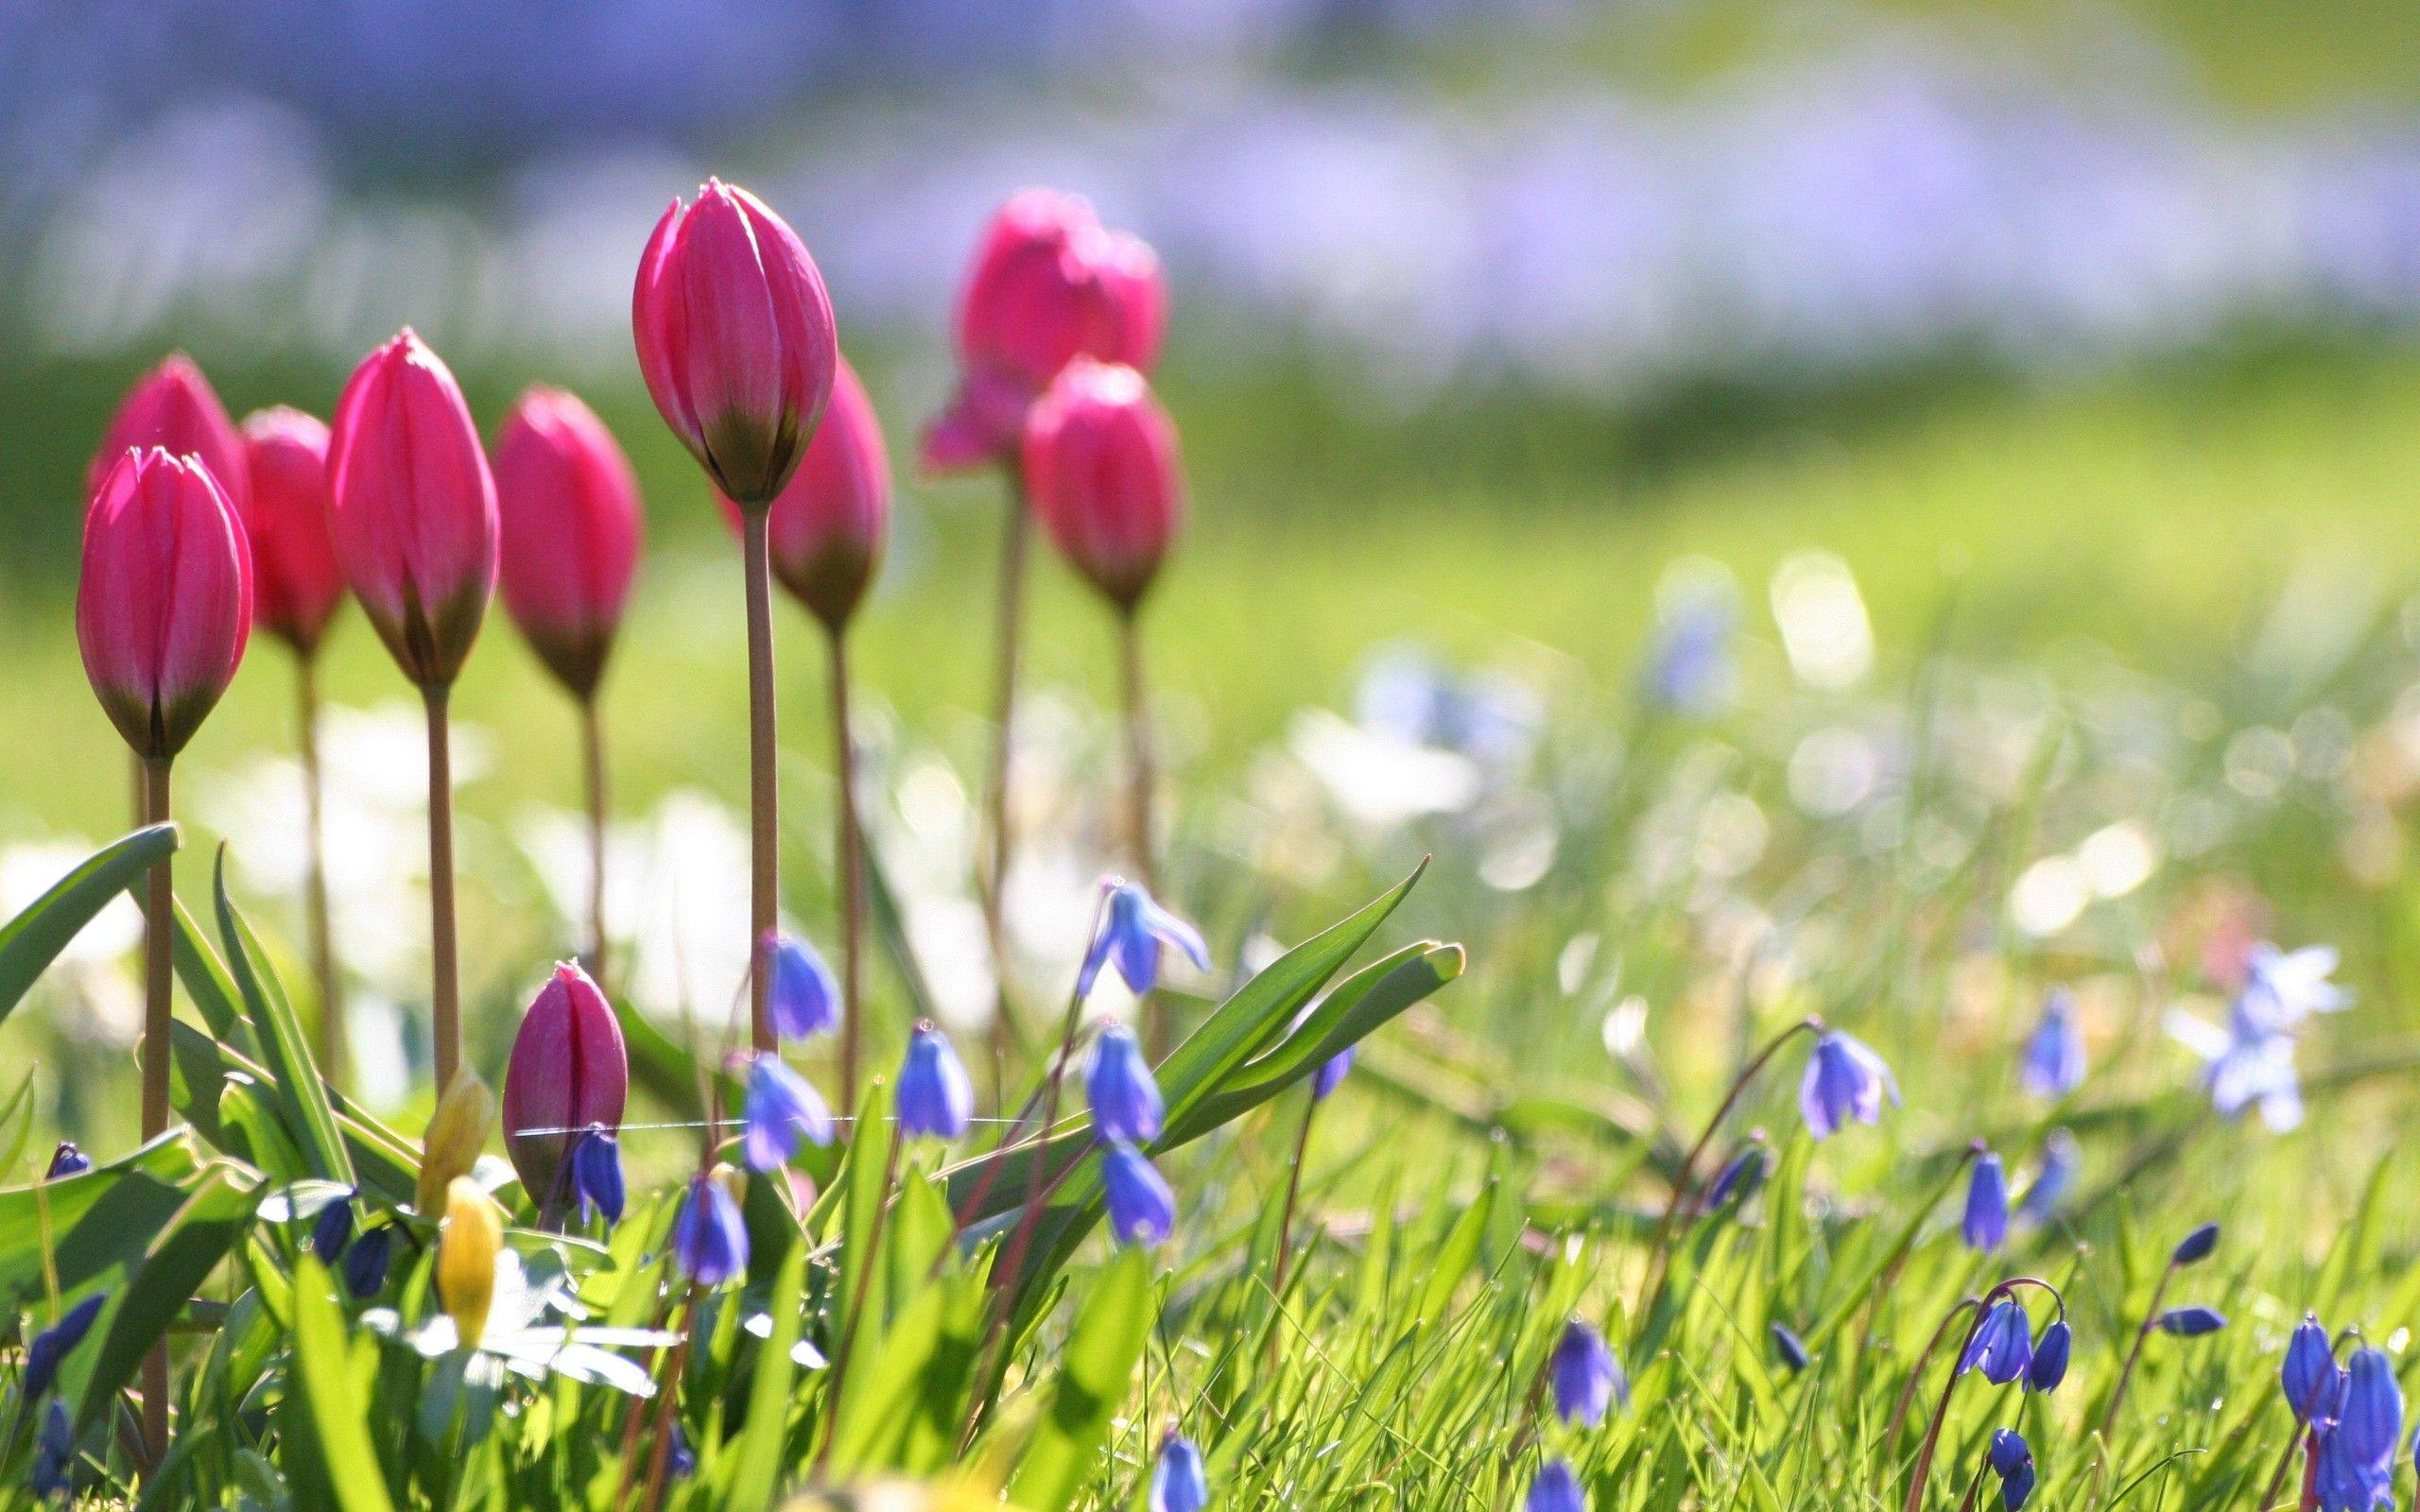 Spring Flowers Wallpapers & Pictures HD | flowers | Pinterest ...